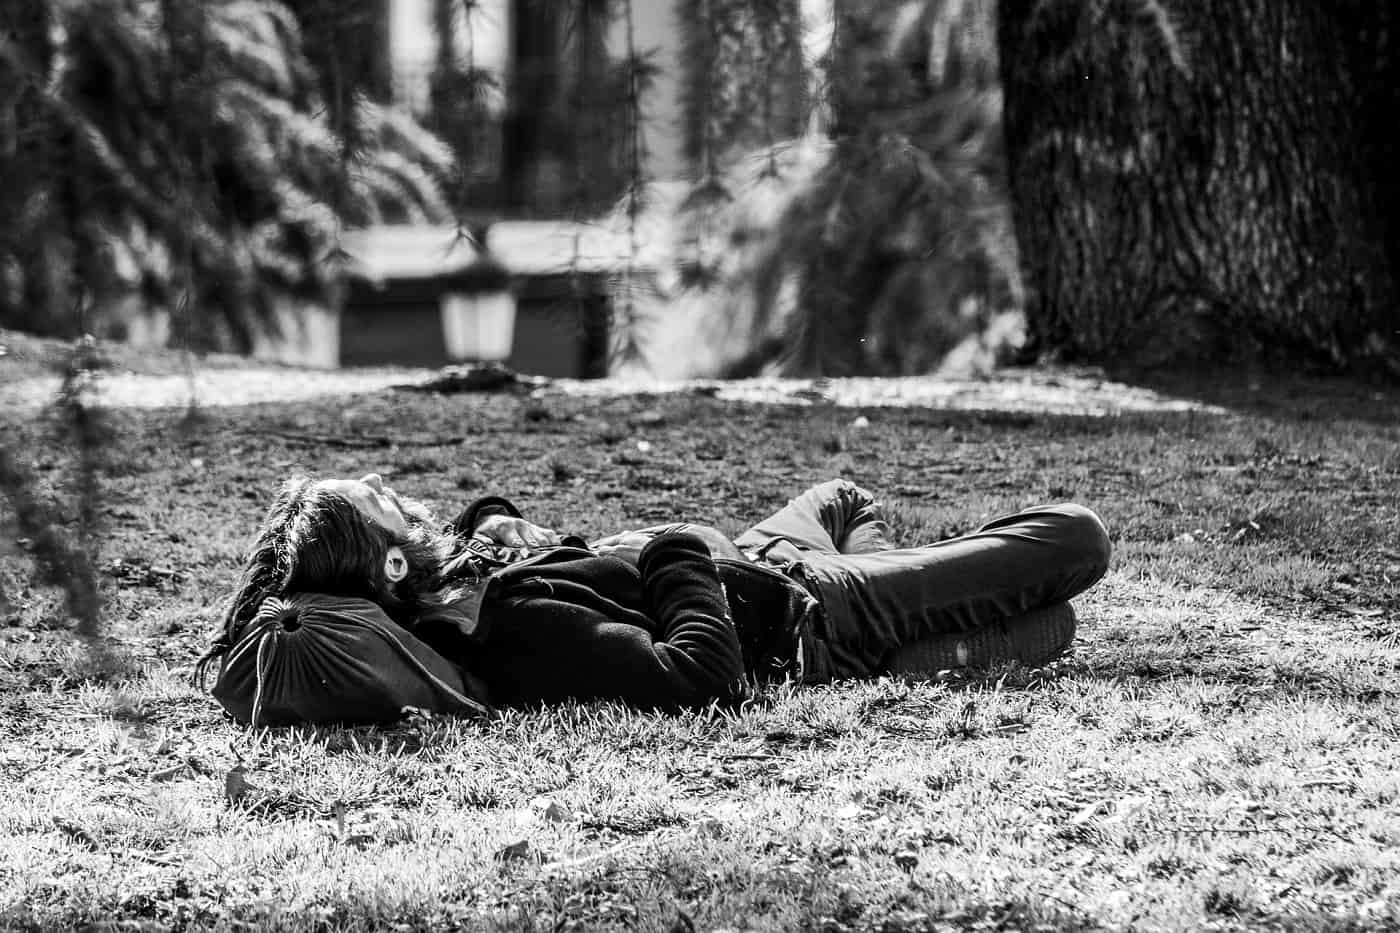 Man lying on grass with head on bag - Poems by Mike Larcombe